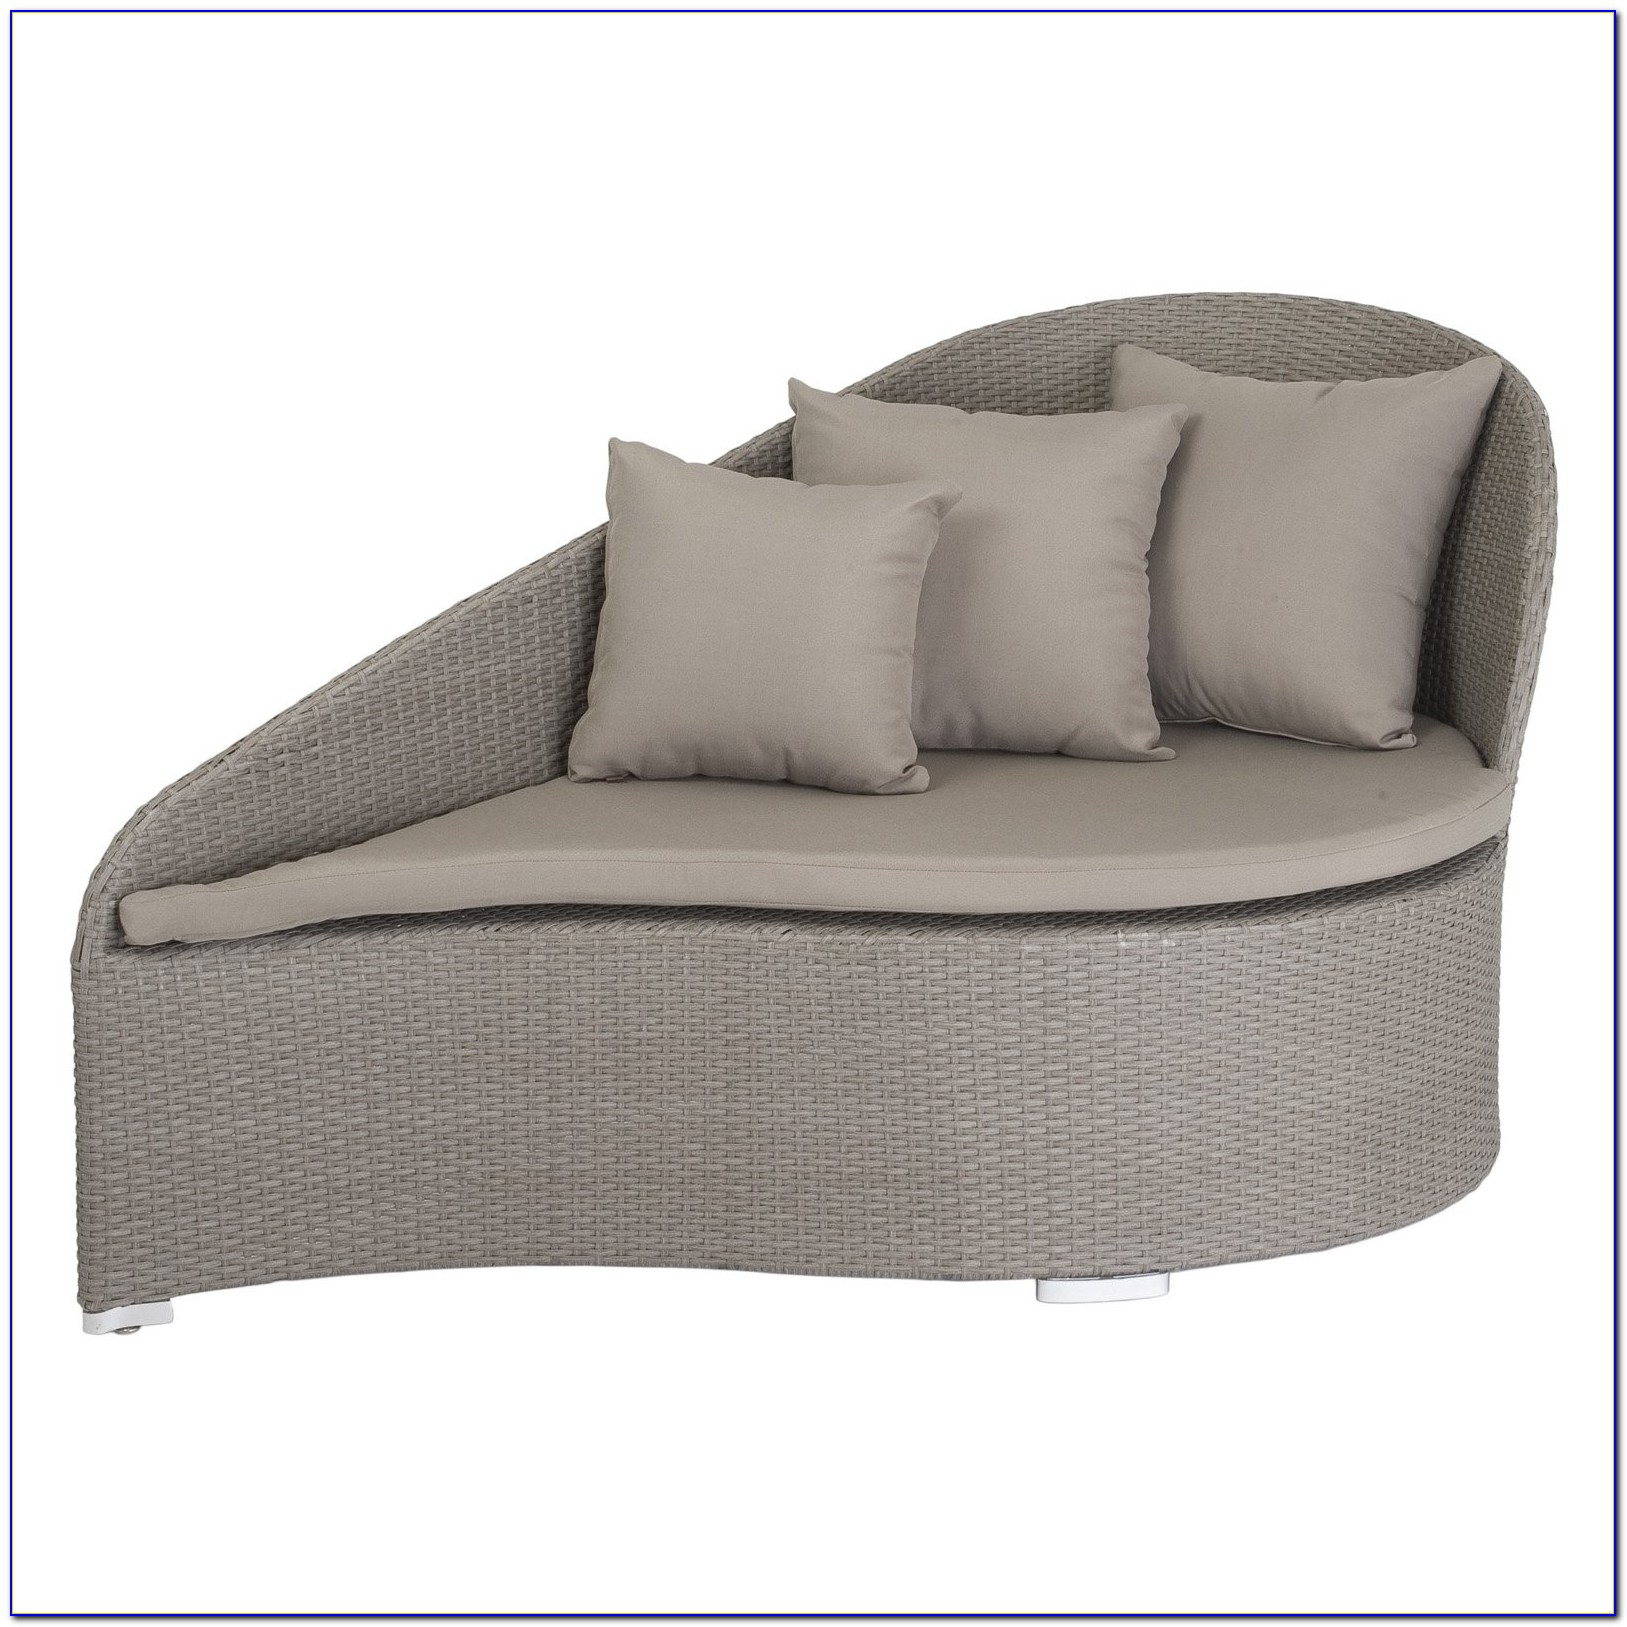 Indoor Chaise Lounge Chairs Covers